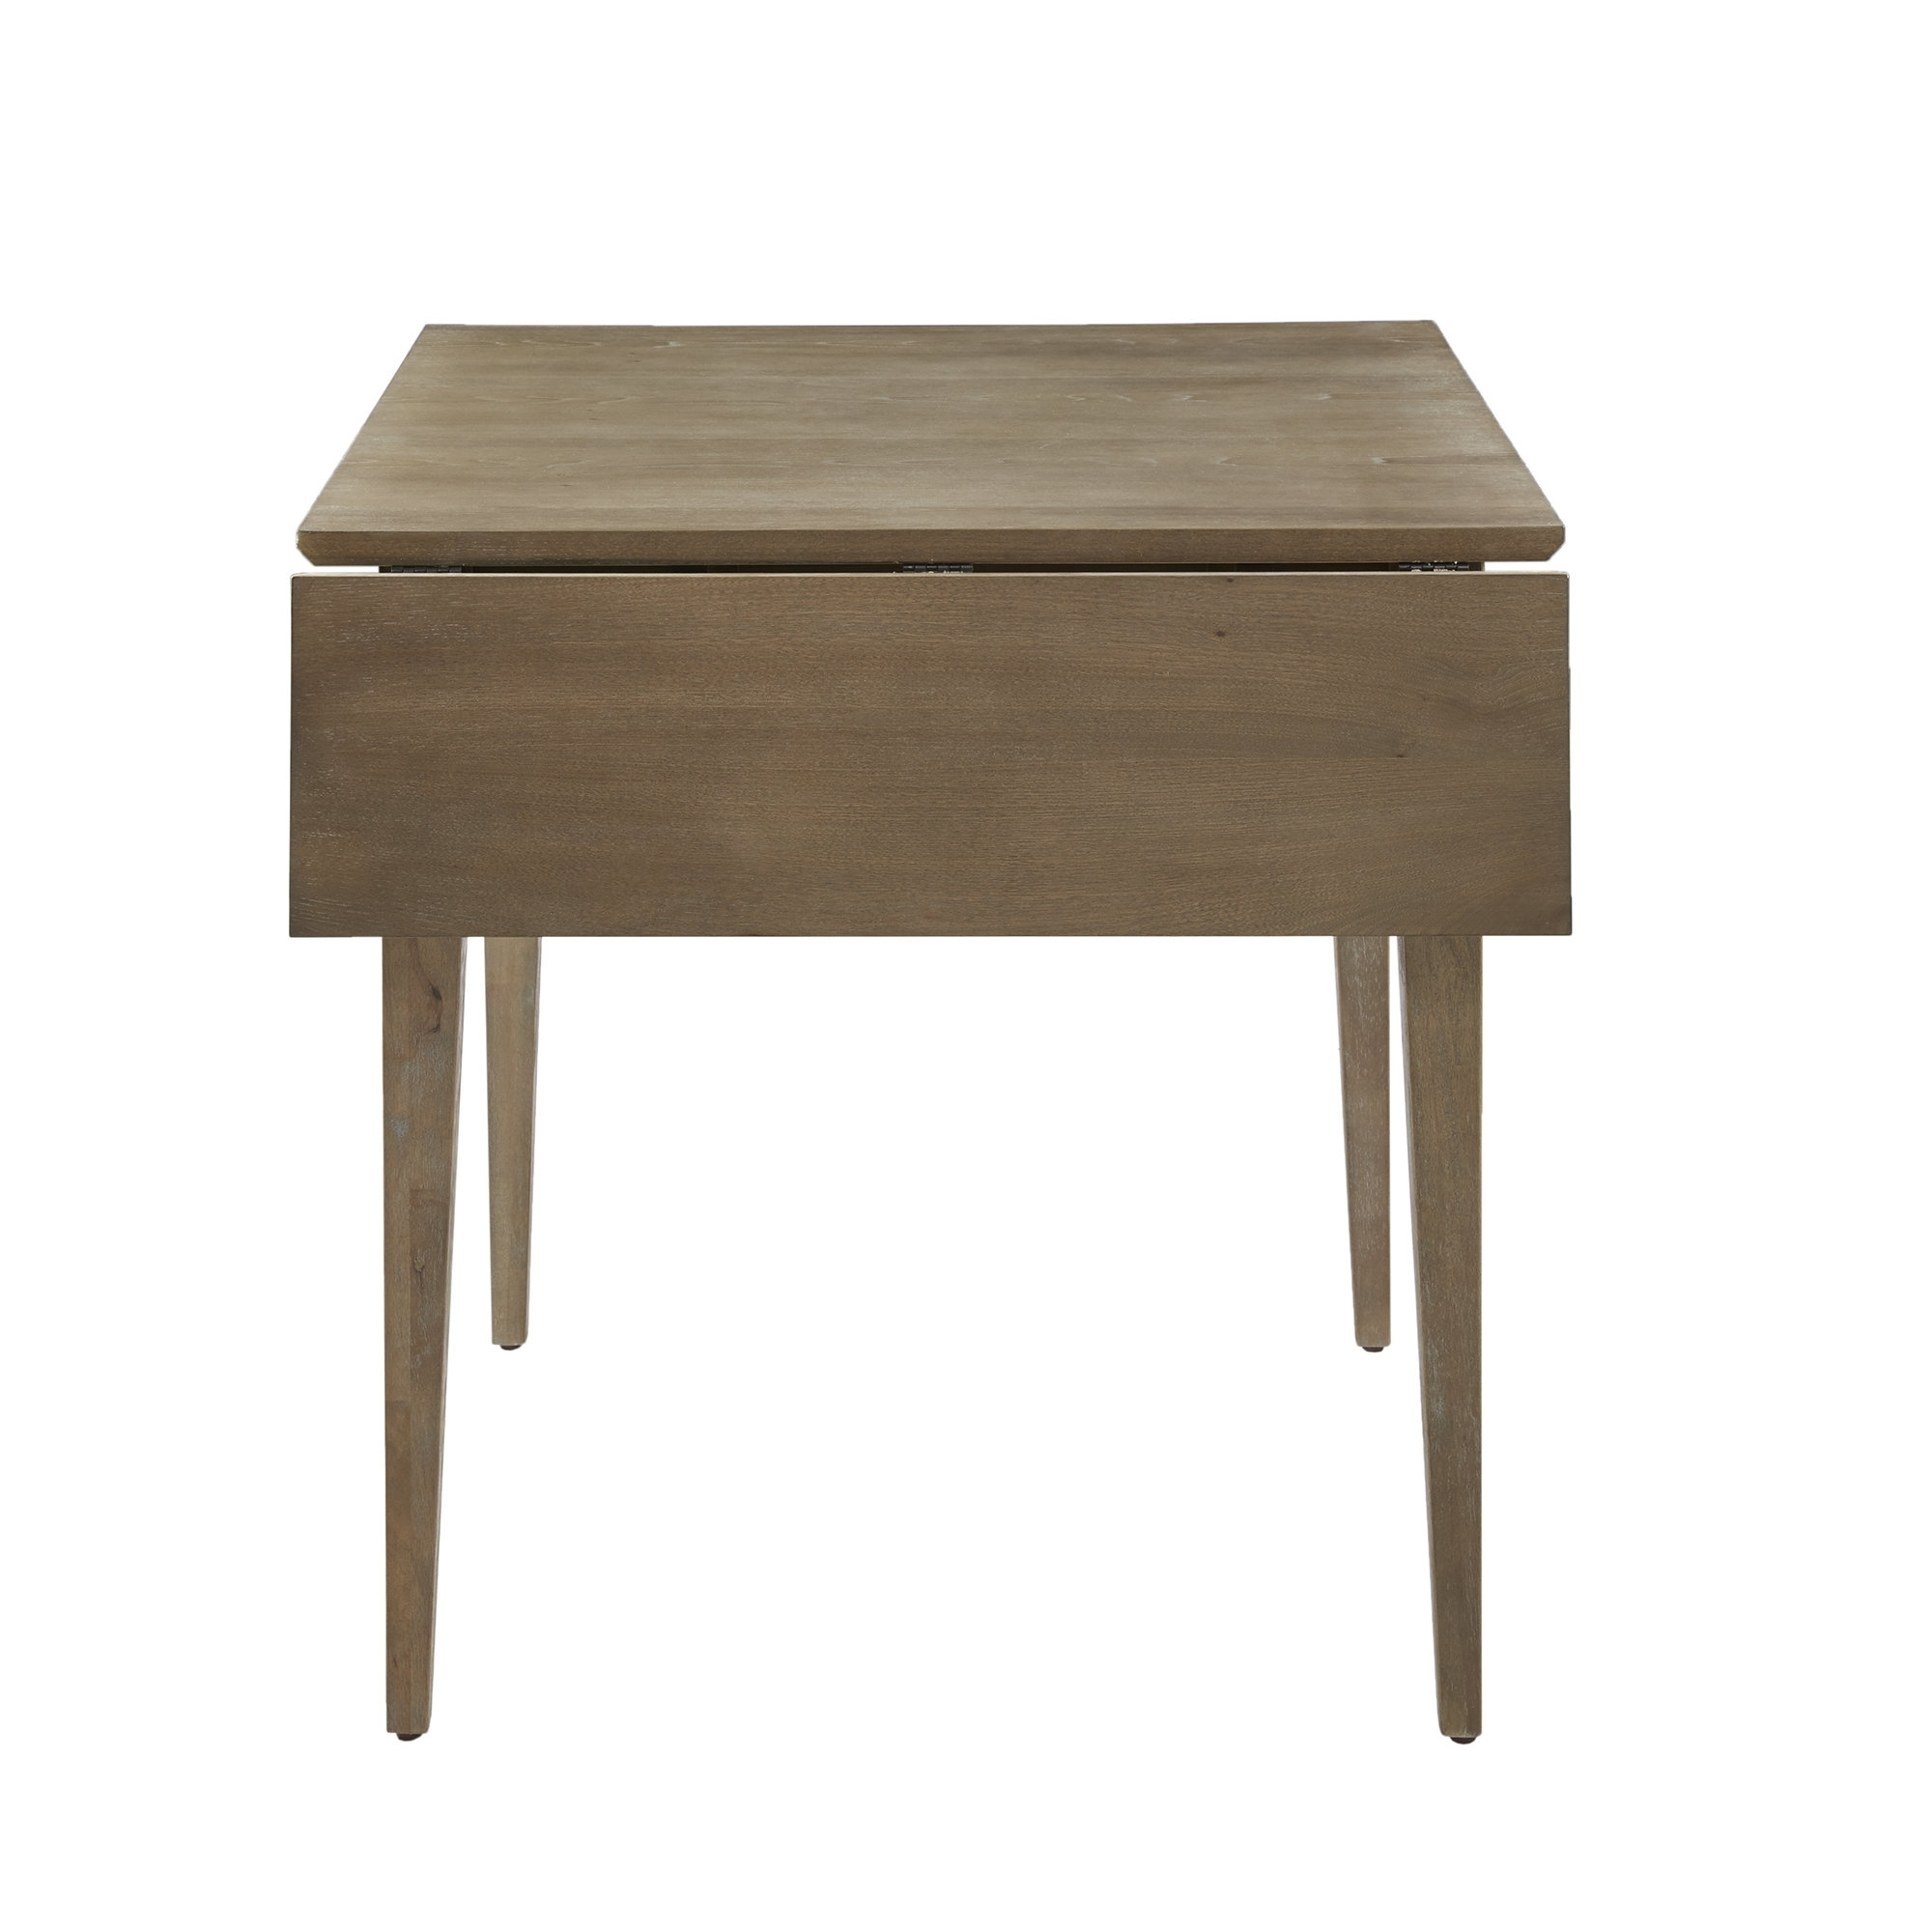 Cheap Drop Leaf Dining Tables Intended For Most Recent Corrigan Studio Durfee Drop Leaf Dining Table (View 7 of 25)